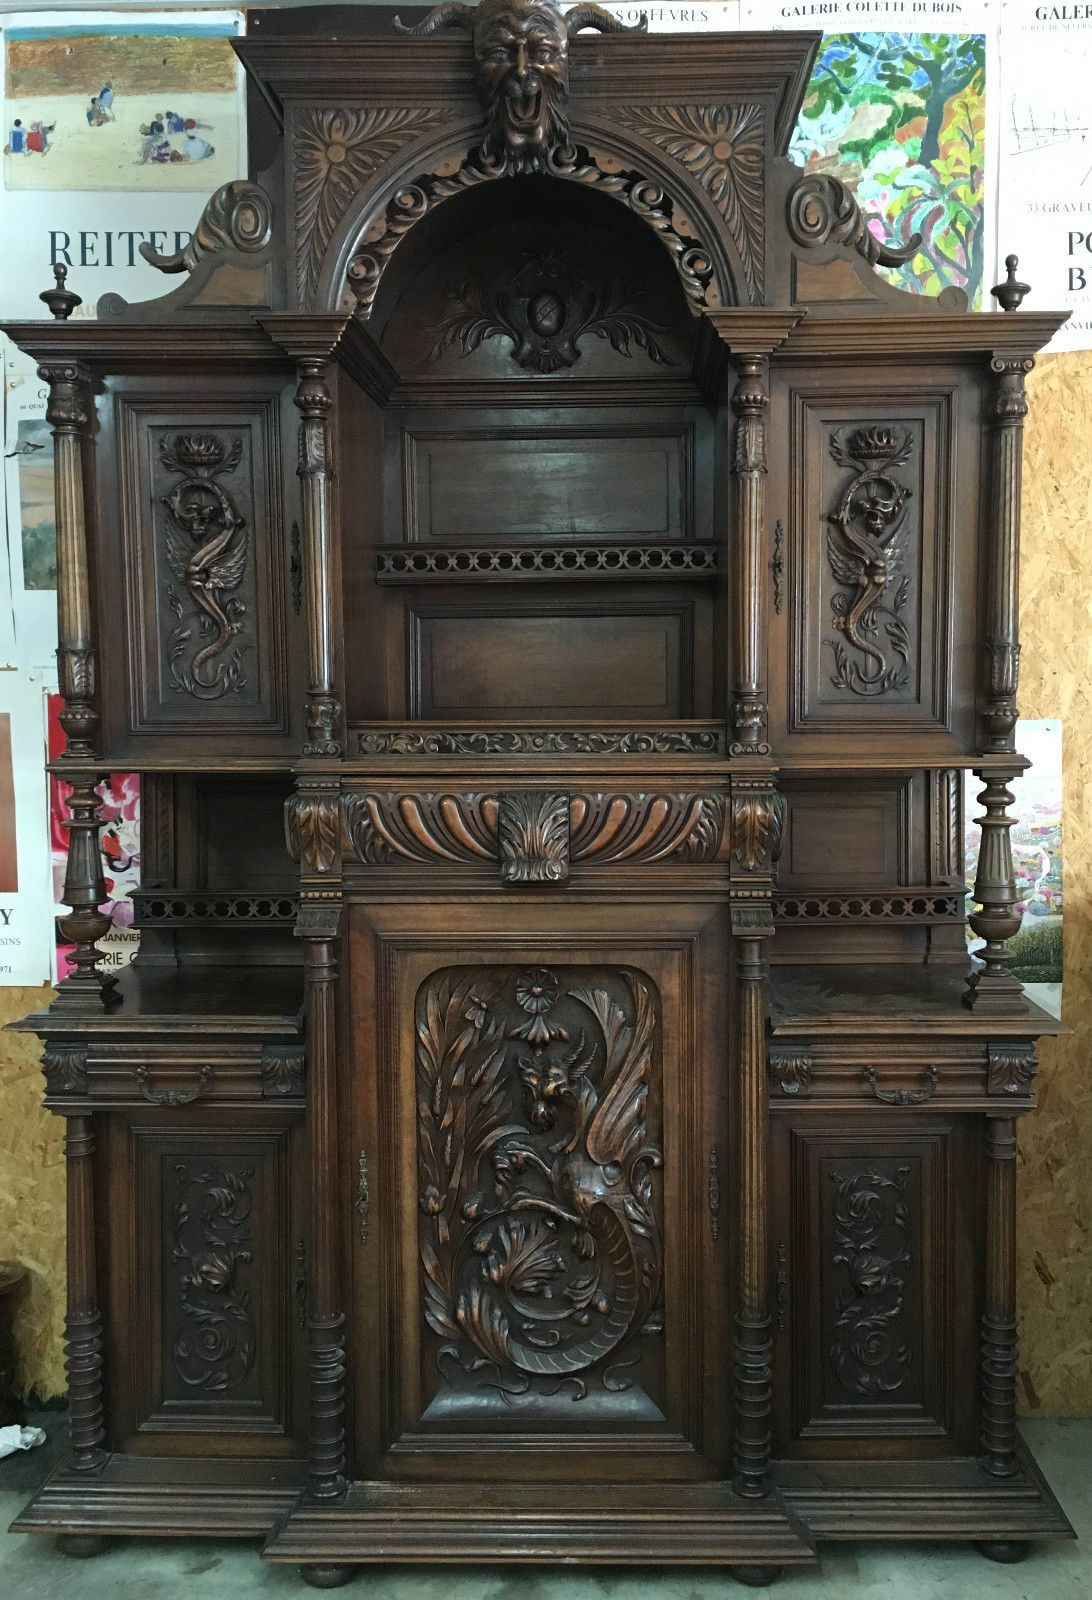 grand buffet en noyer henri ii 2 decor diable demon esoterique dragon chimere eur. Black Bedroom Furniture Sets. Home Design Ideas